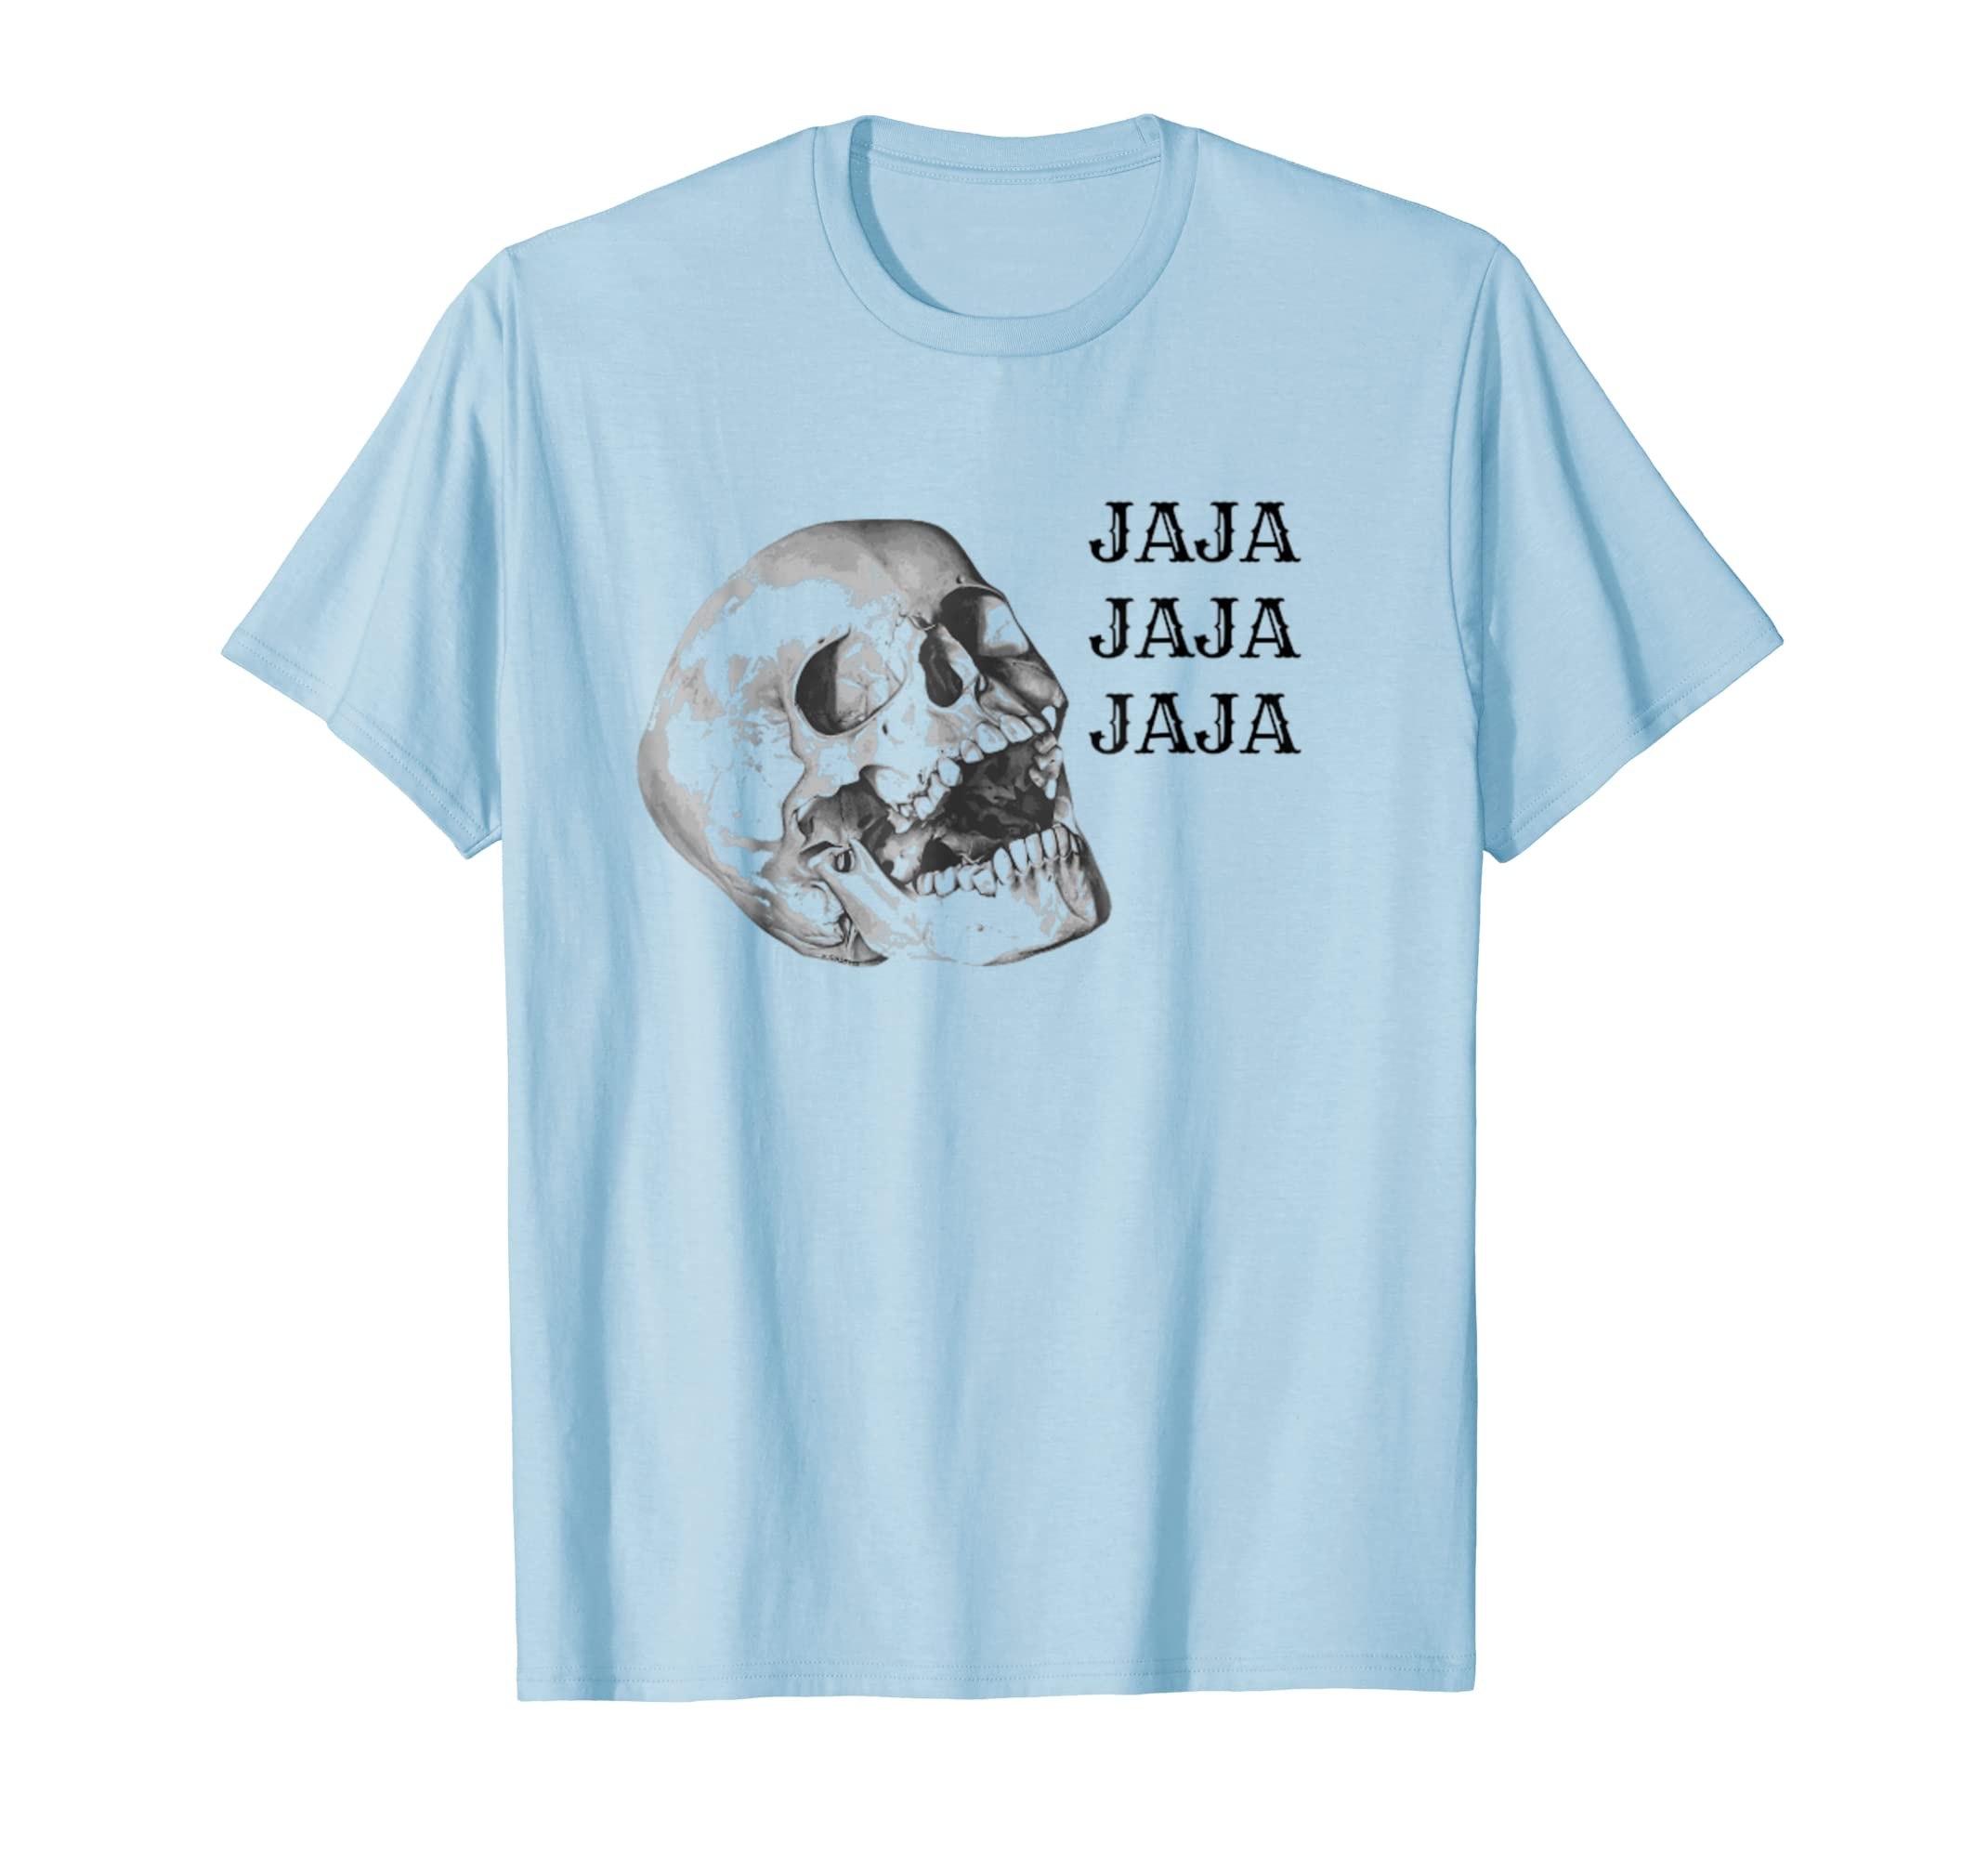 Amazon.com: Laughing Skull JAJAJA Latino/Spanish Slang Camiseta: Clothing